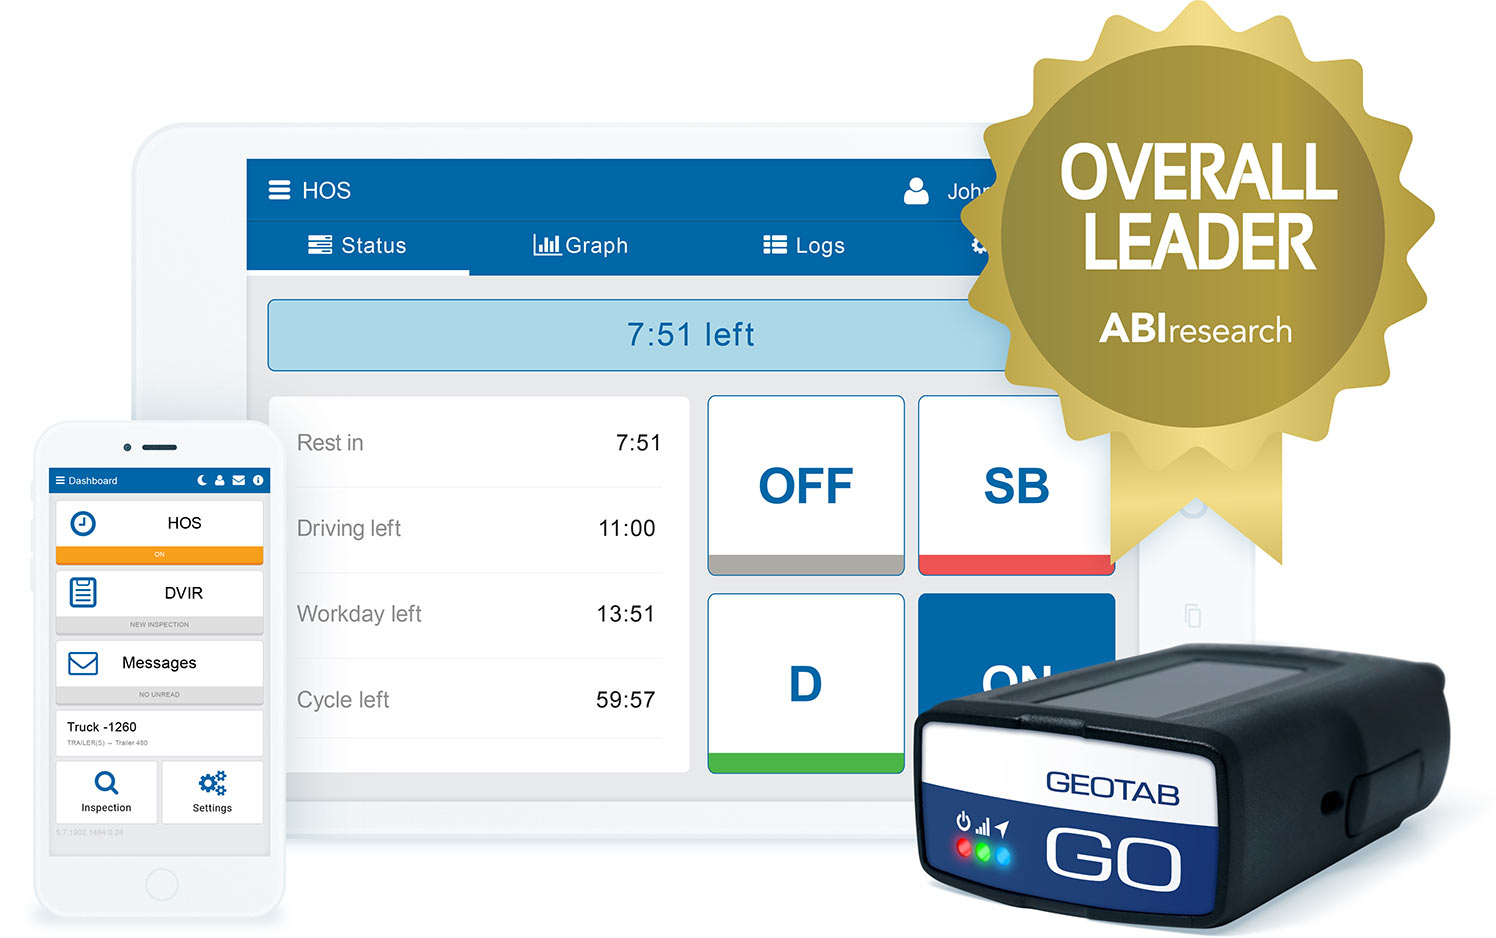 Geotab Drive app on mobile devices, a GO device and the ABI logo